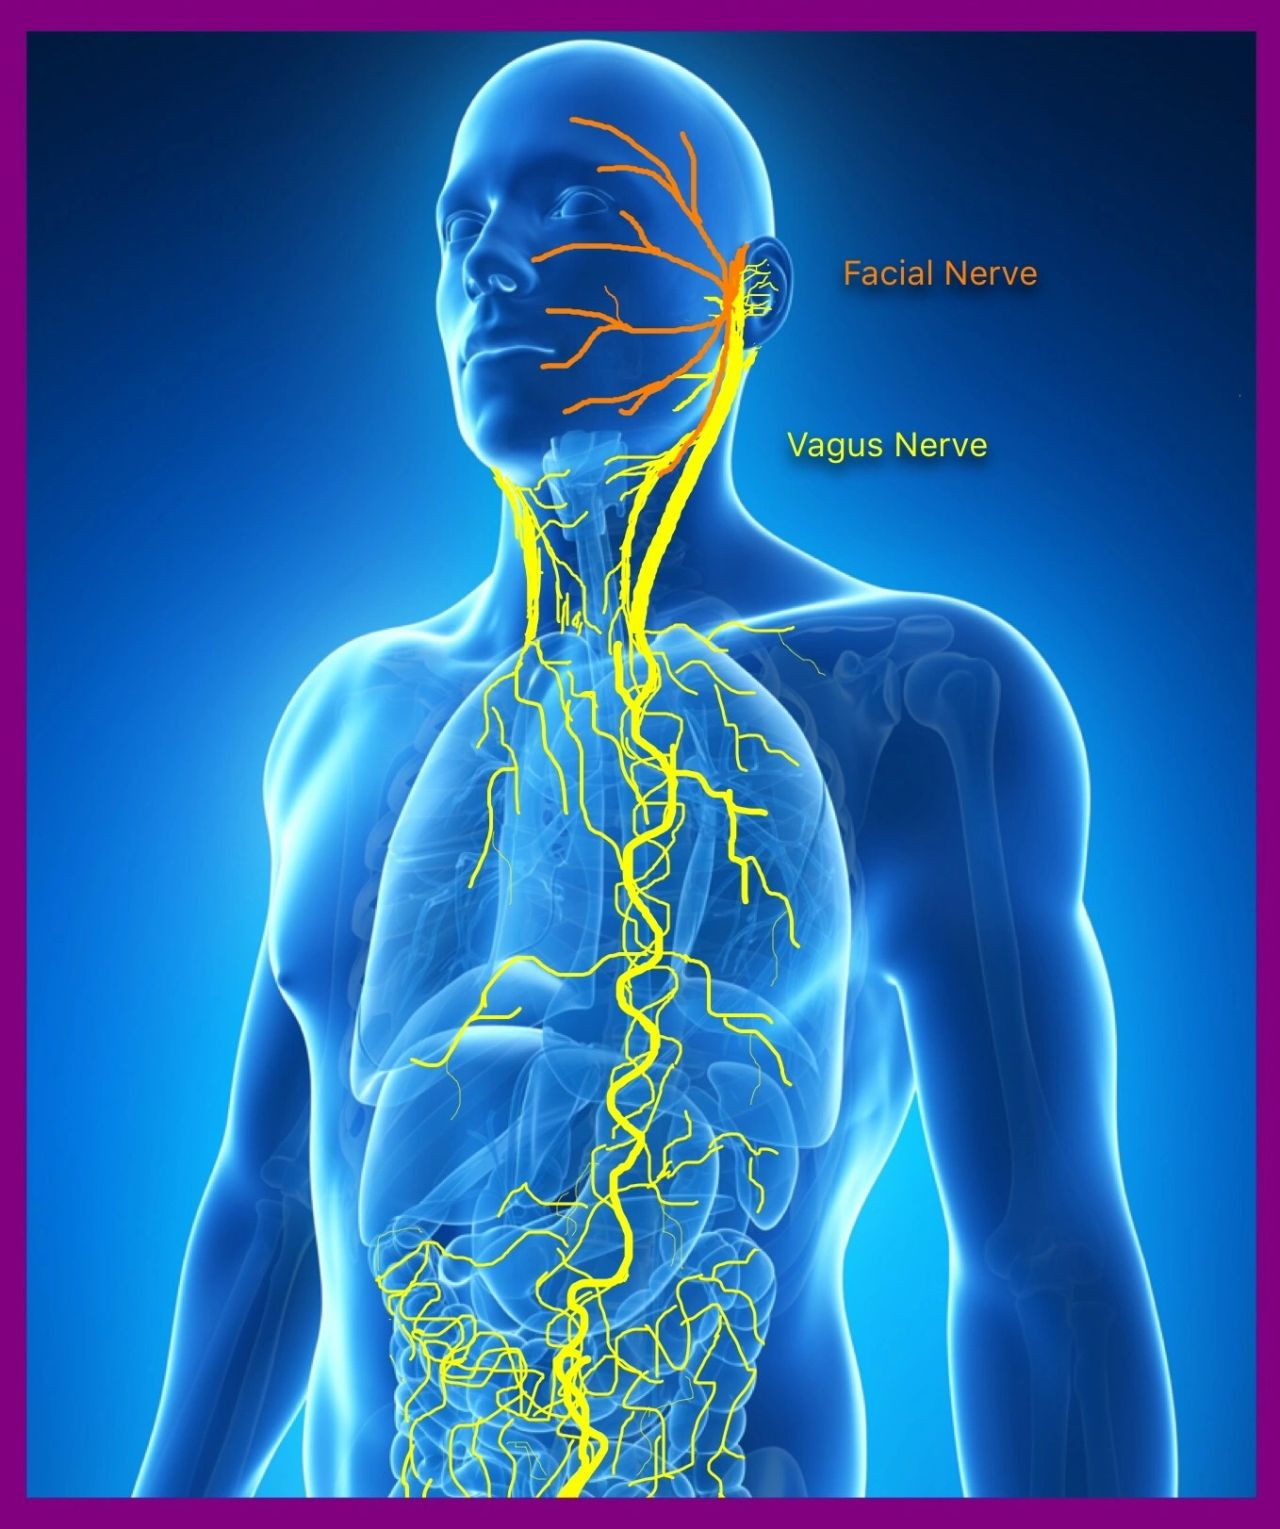 Light Therapy On The Vagus Nerve And The Facial Nerve